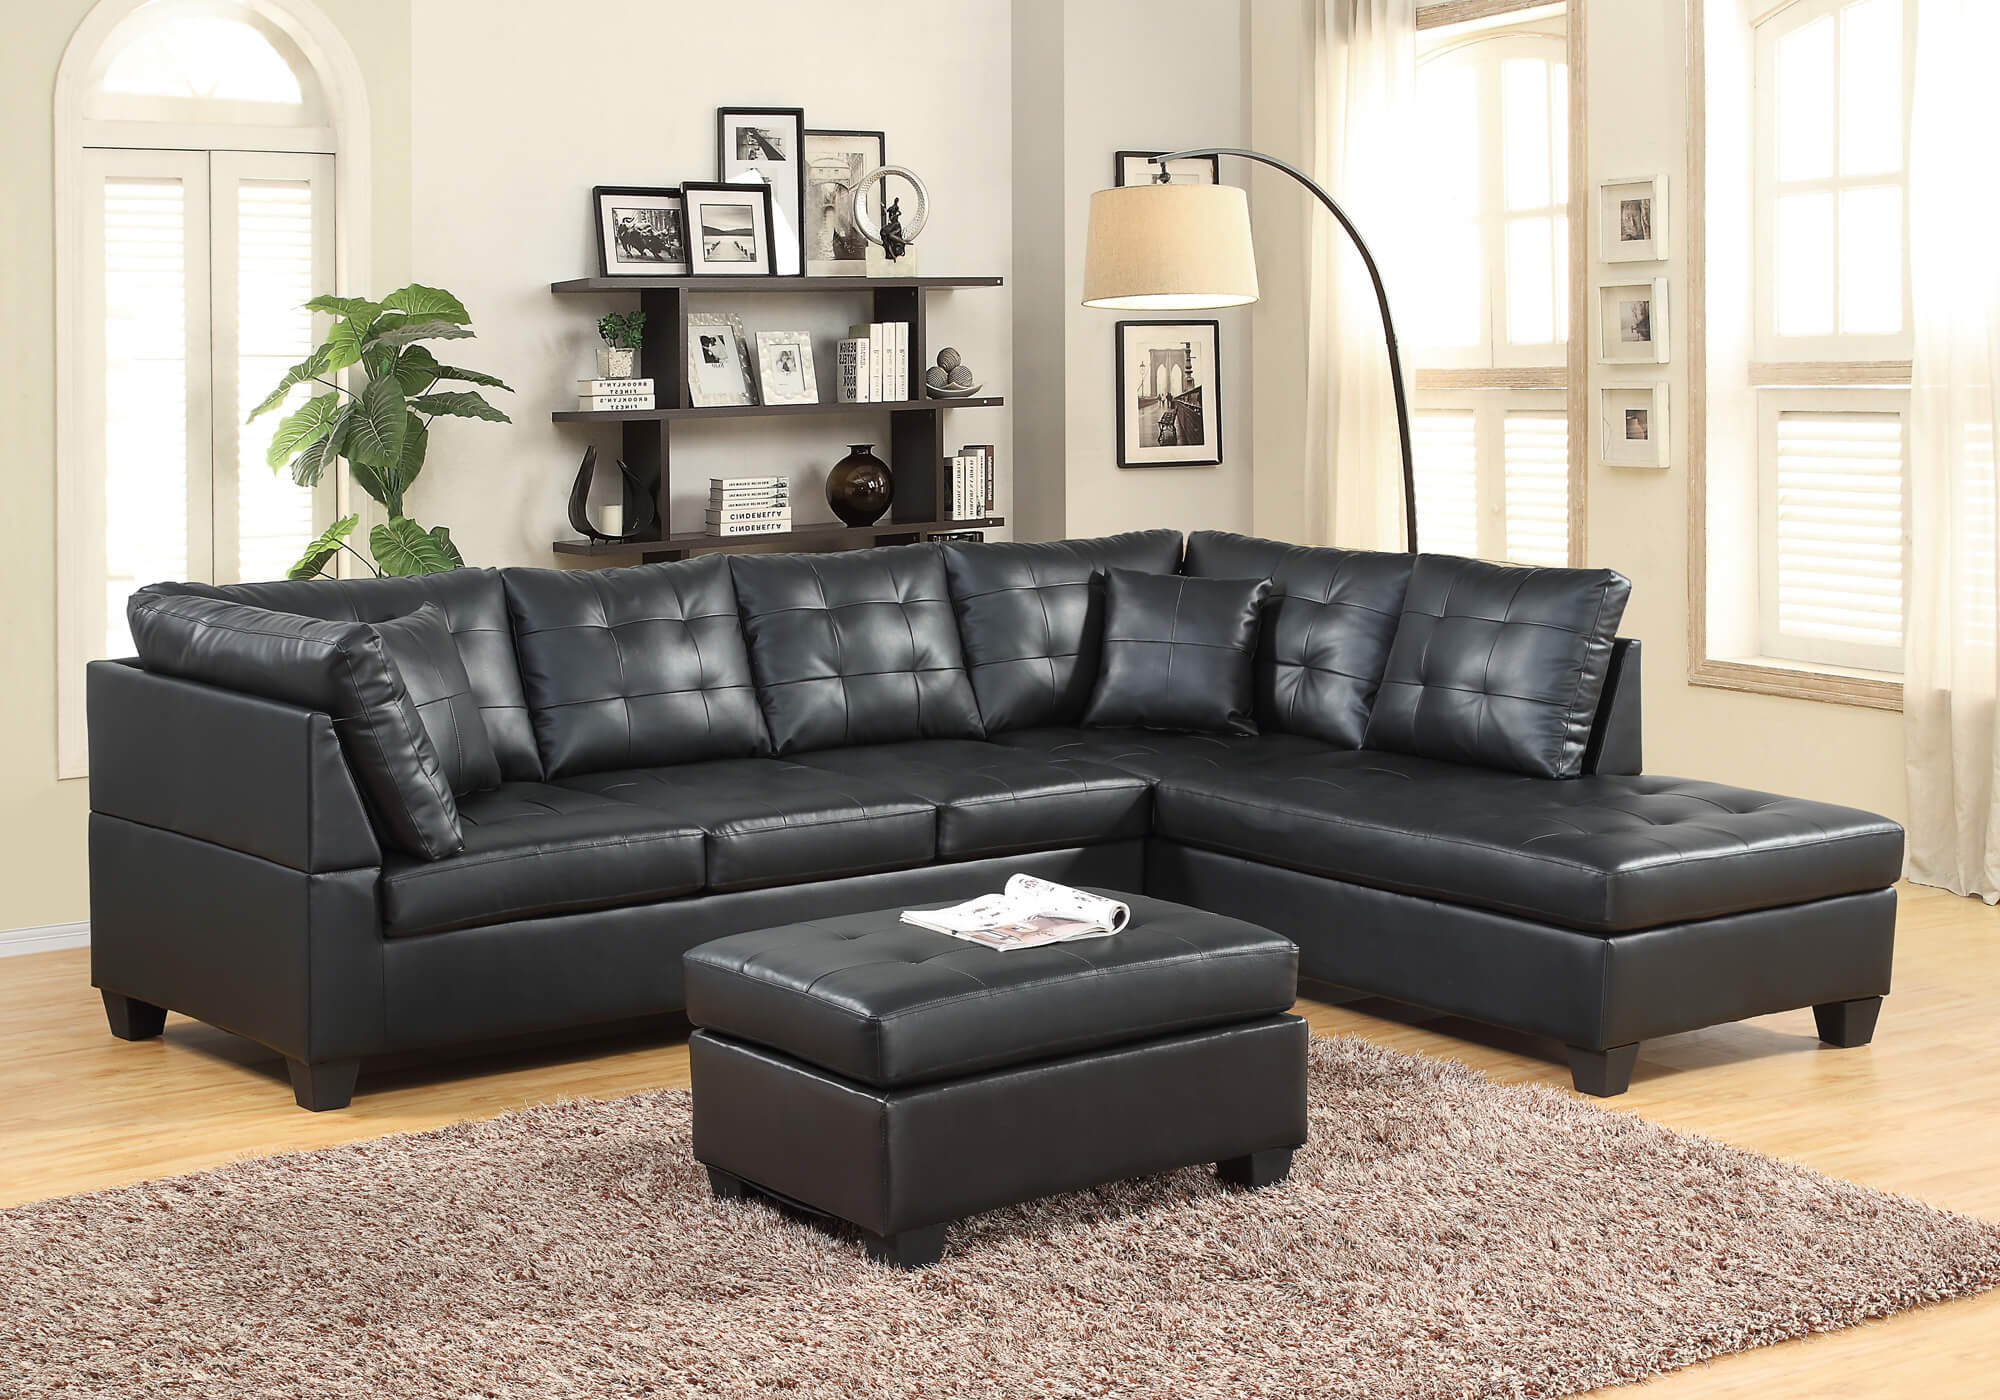 Black leather like sectiona sectional sofa sets for Sectional sofa set up